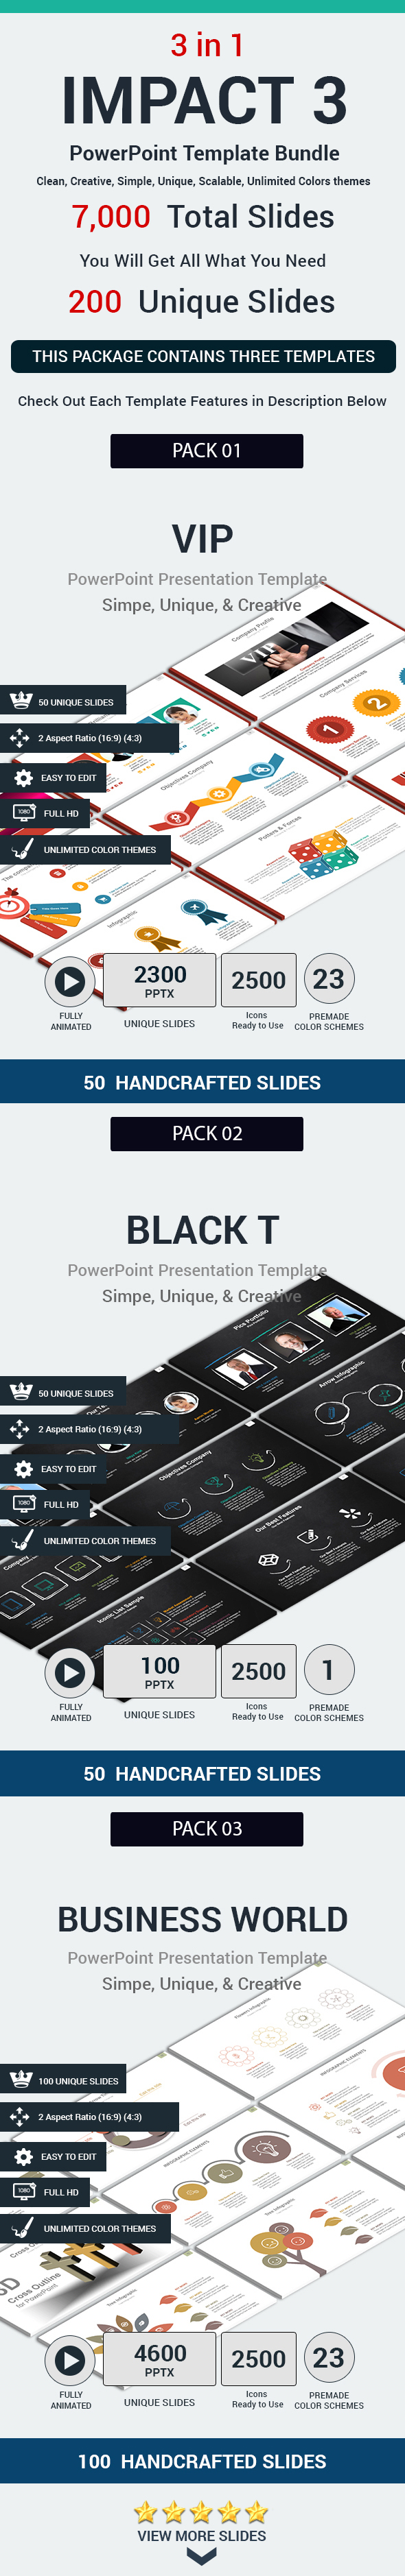 IMPACT 3 >3 in 1 PowerPoint Template Bundle (PowerPoint Templates)